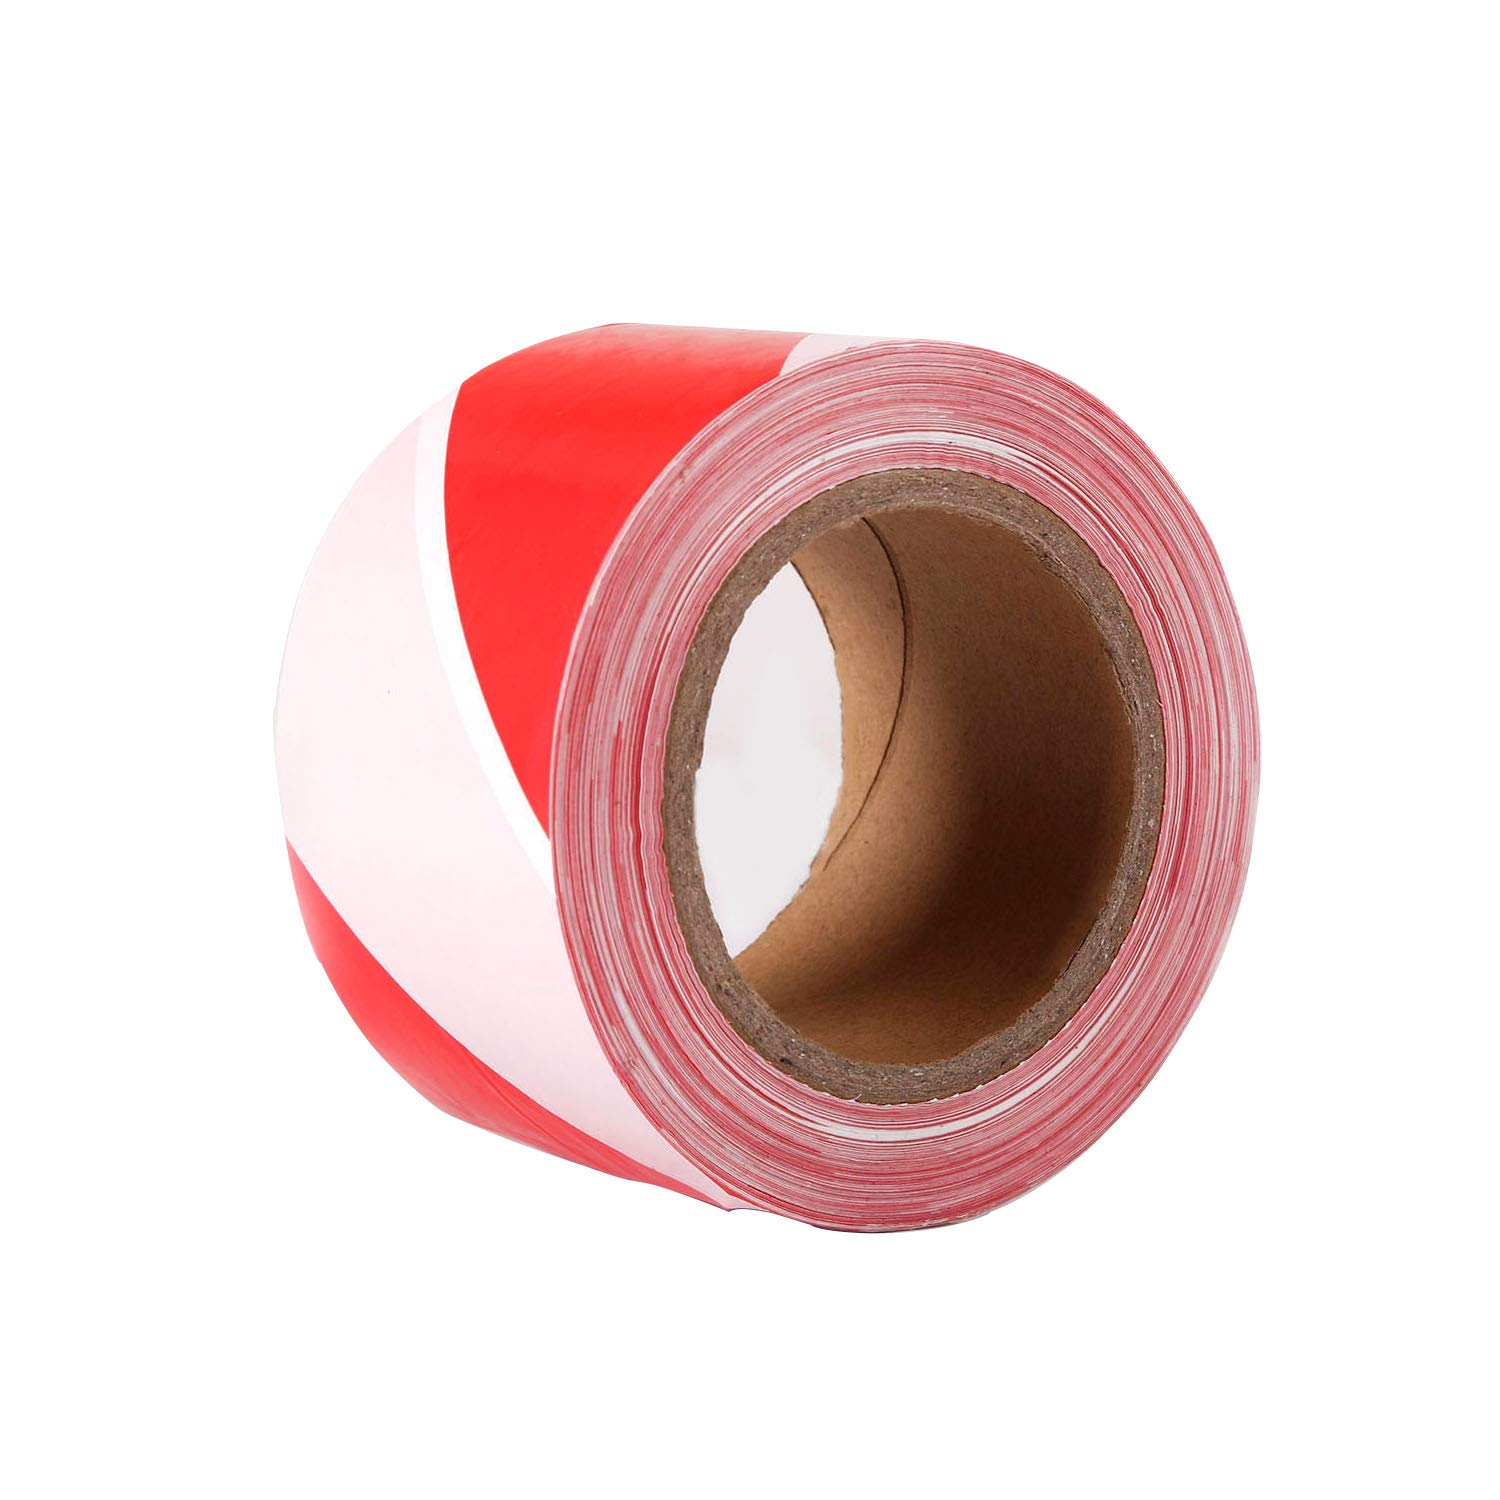 2 x Red and White Barrier Tape Comes With TCH Anti-Bacterial Pen! 1000 metres